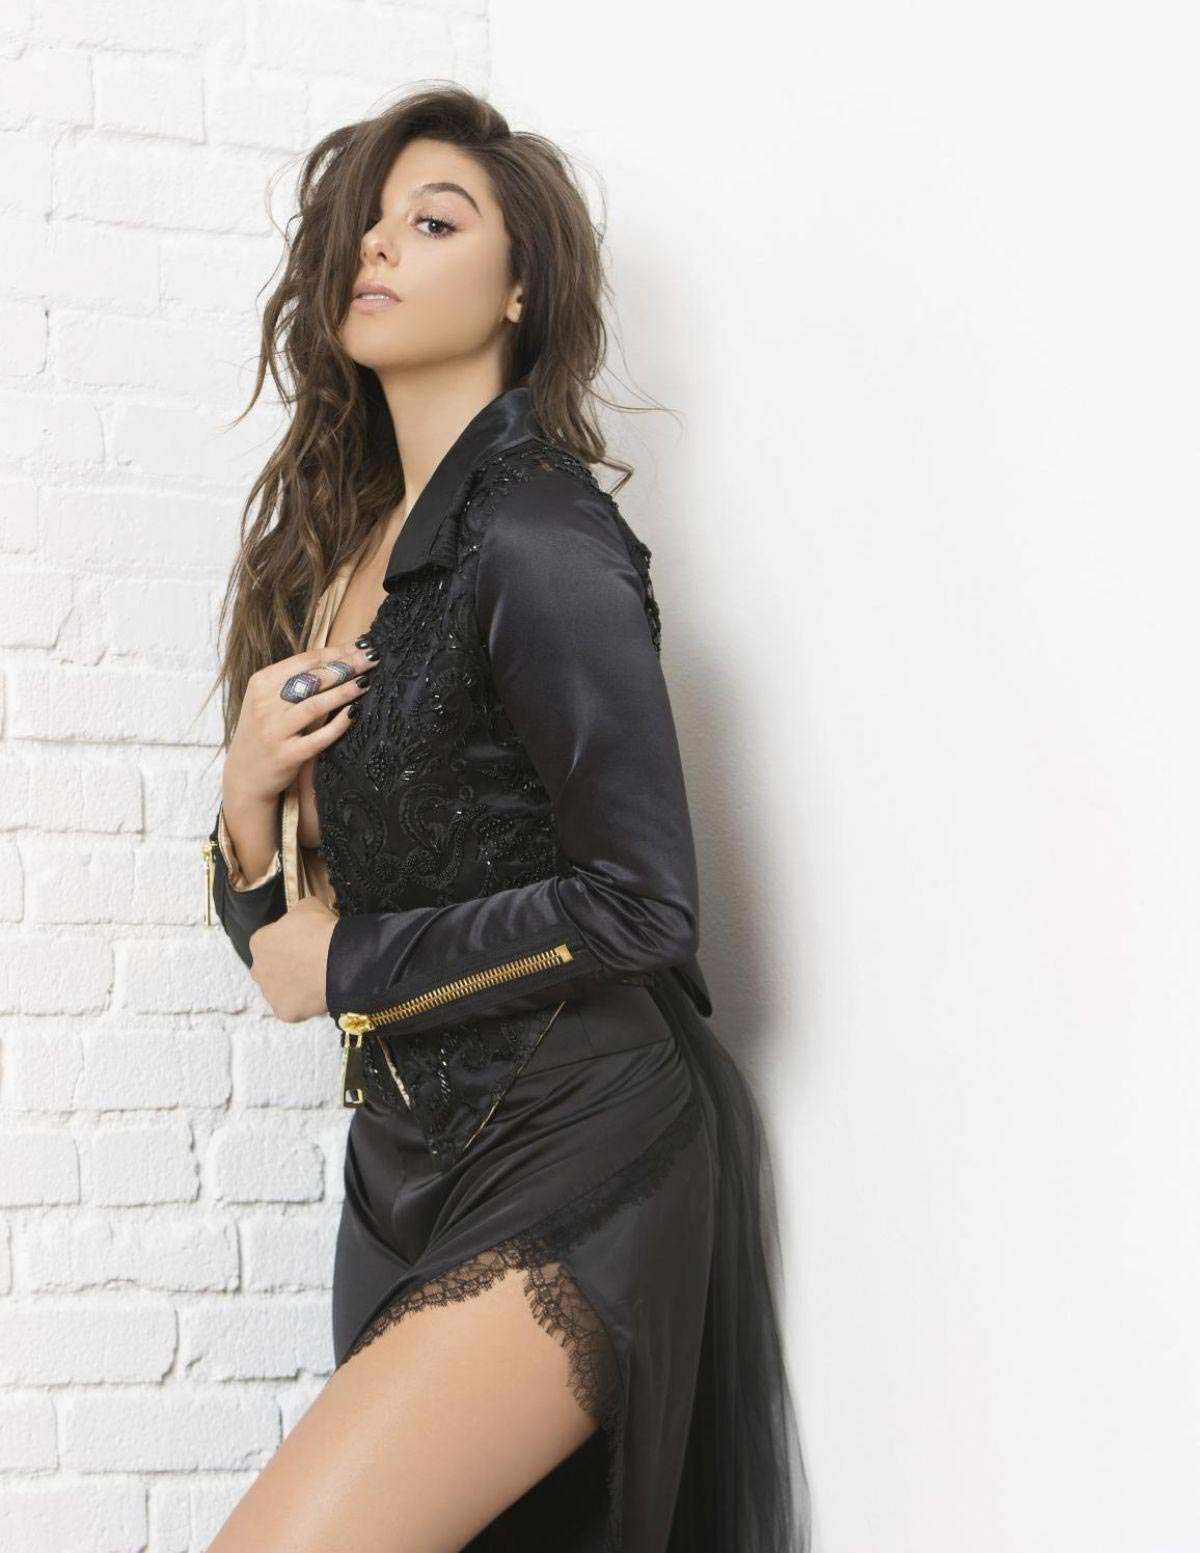 Kira Kosarin in Qpmag Fashion Magazine, September 2018 1